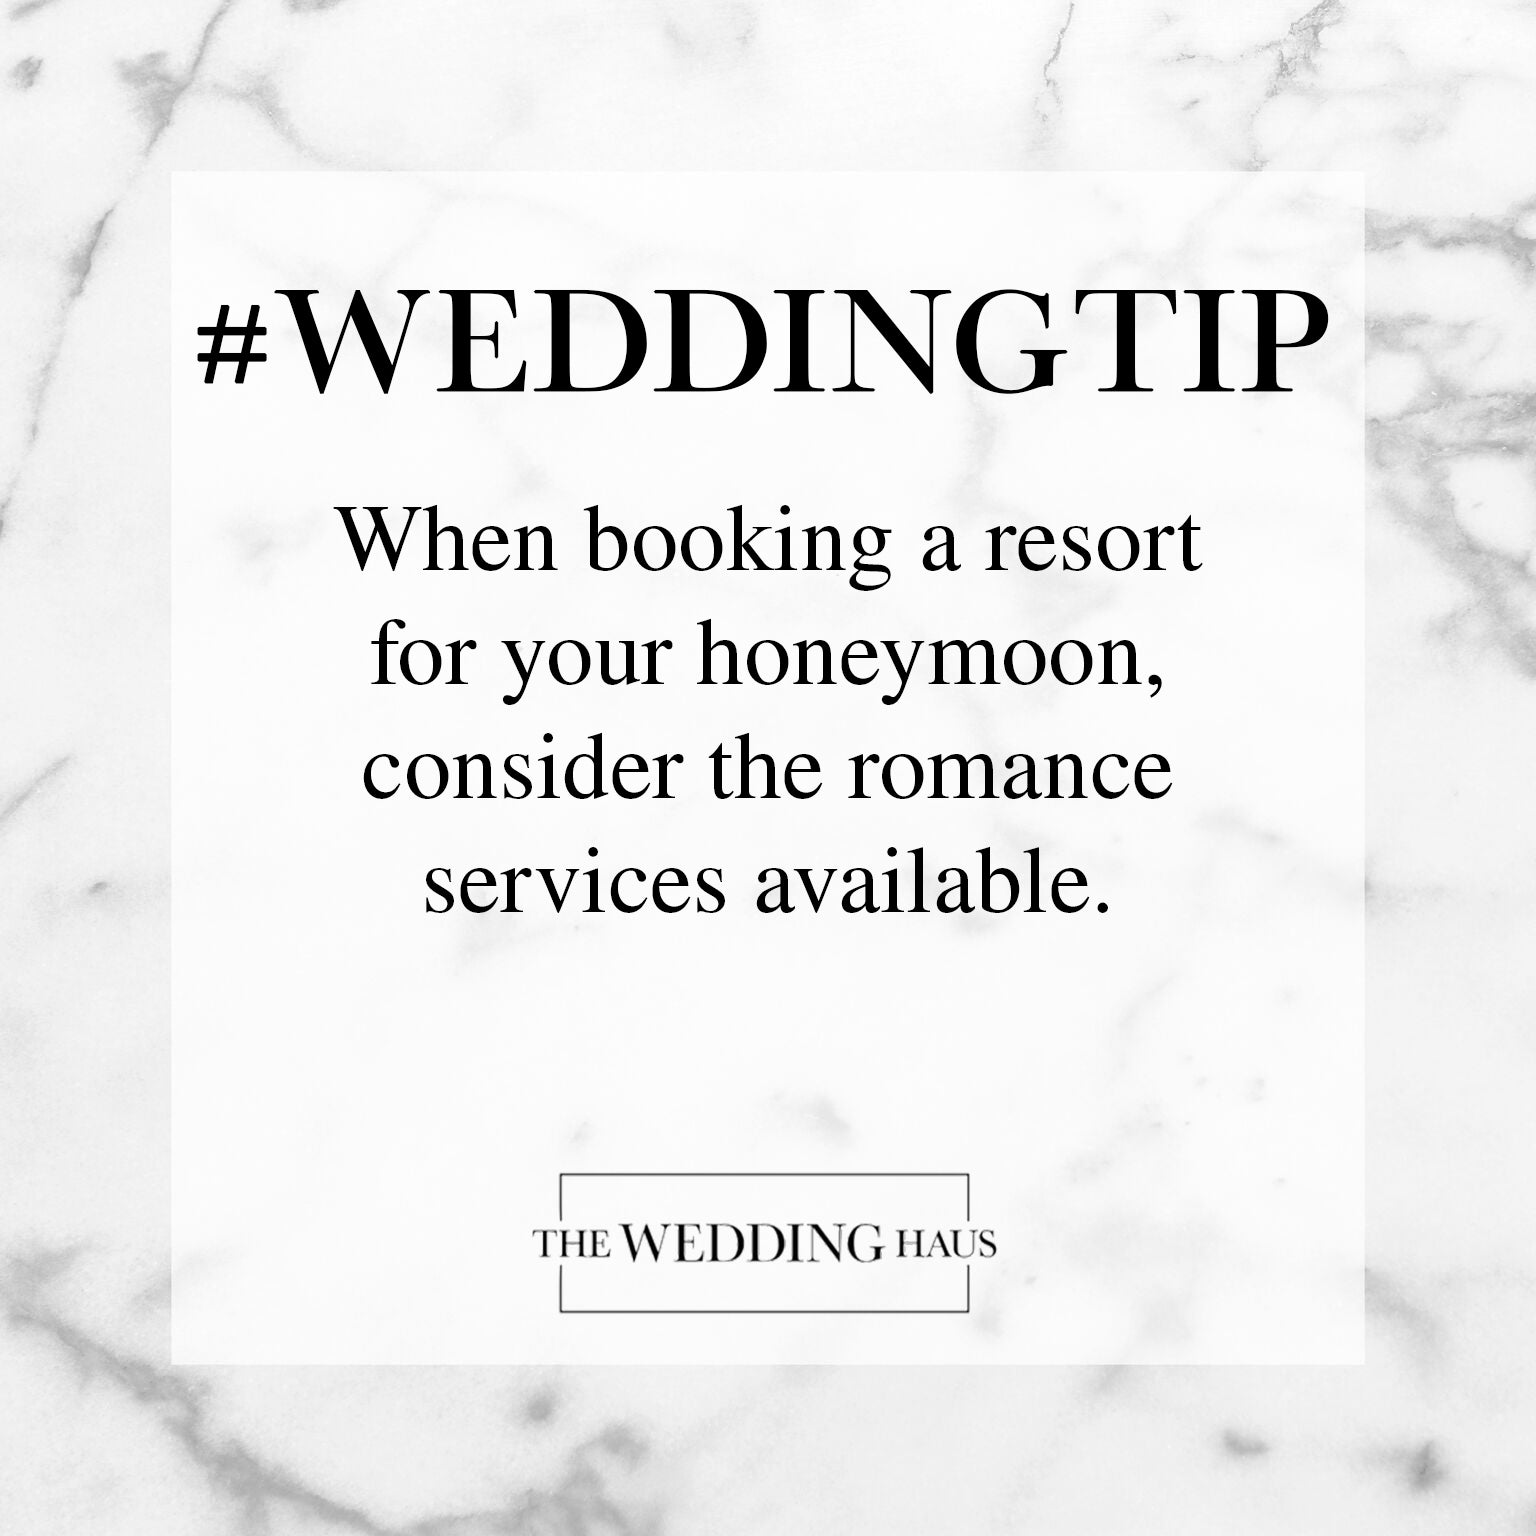 Wedding Tip for Booking a Resort from The Wedding Haus